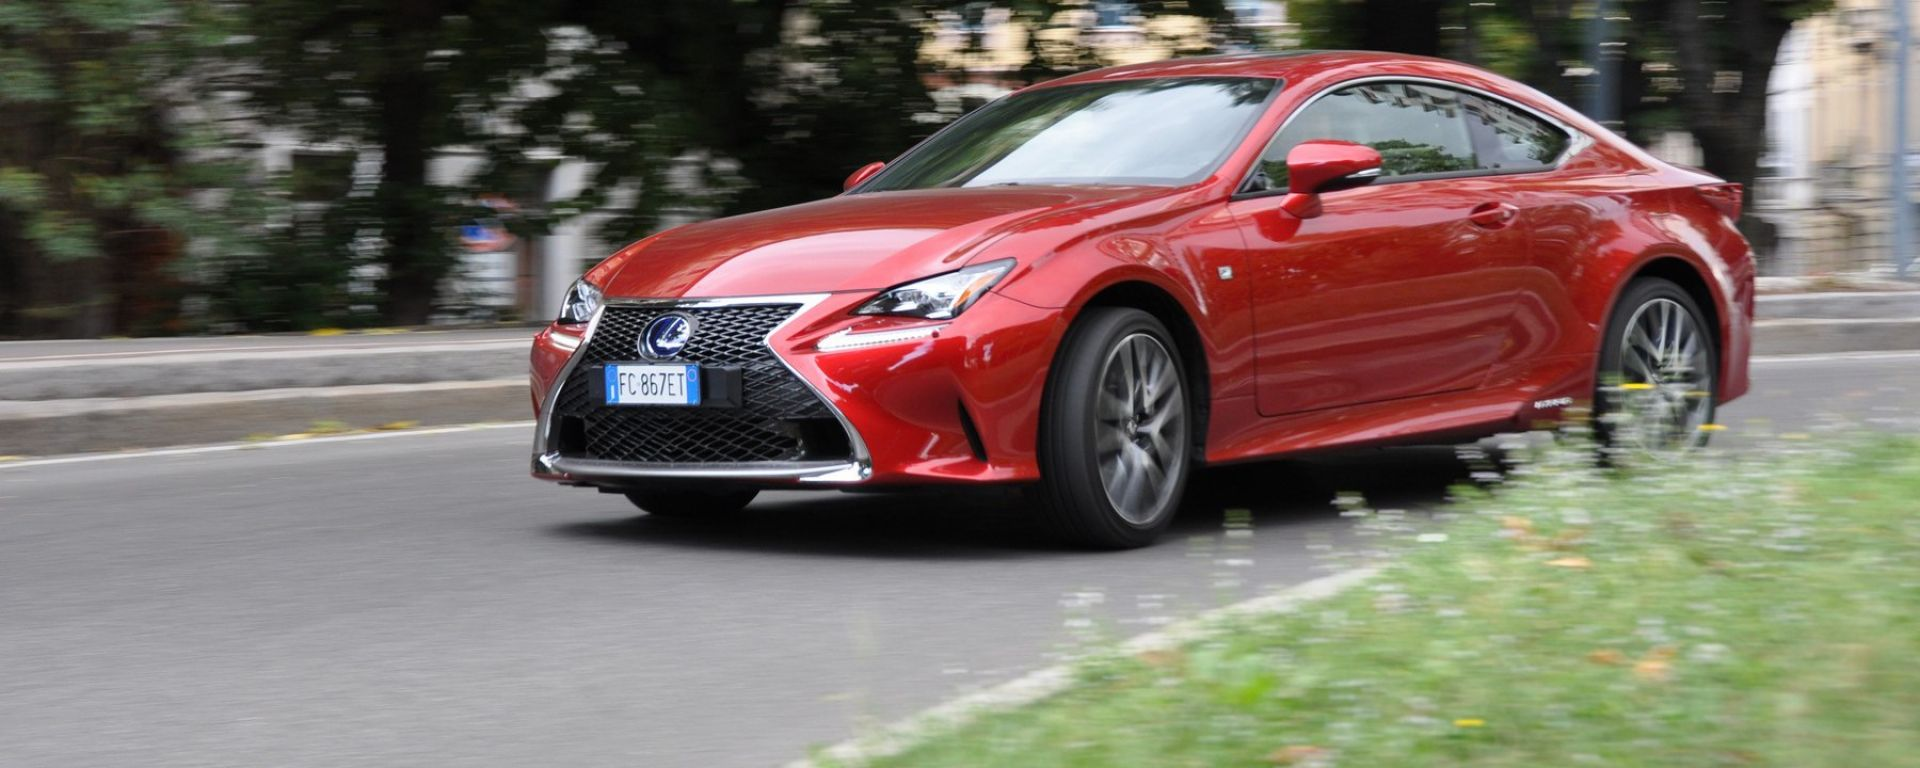 test drive lexus rc 300h f sport ibrida non corre ma che stile motorbox. Black Bedroom Furniture Sets. Home Design Ideas